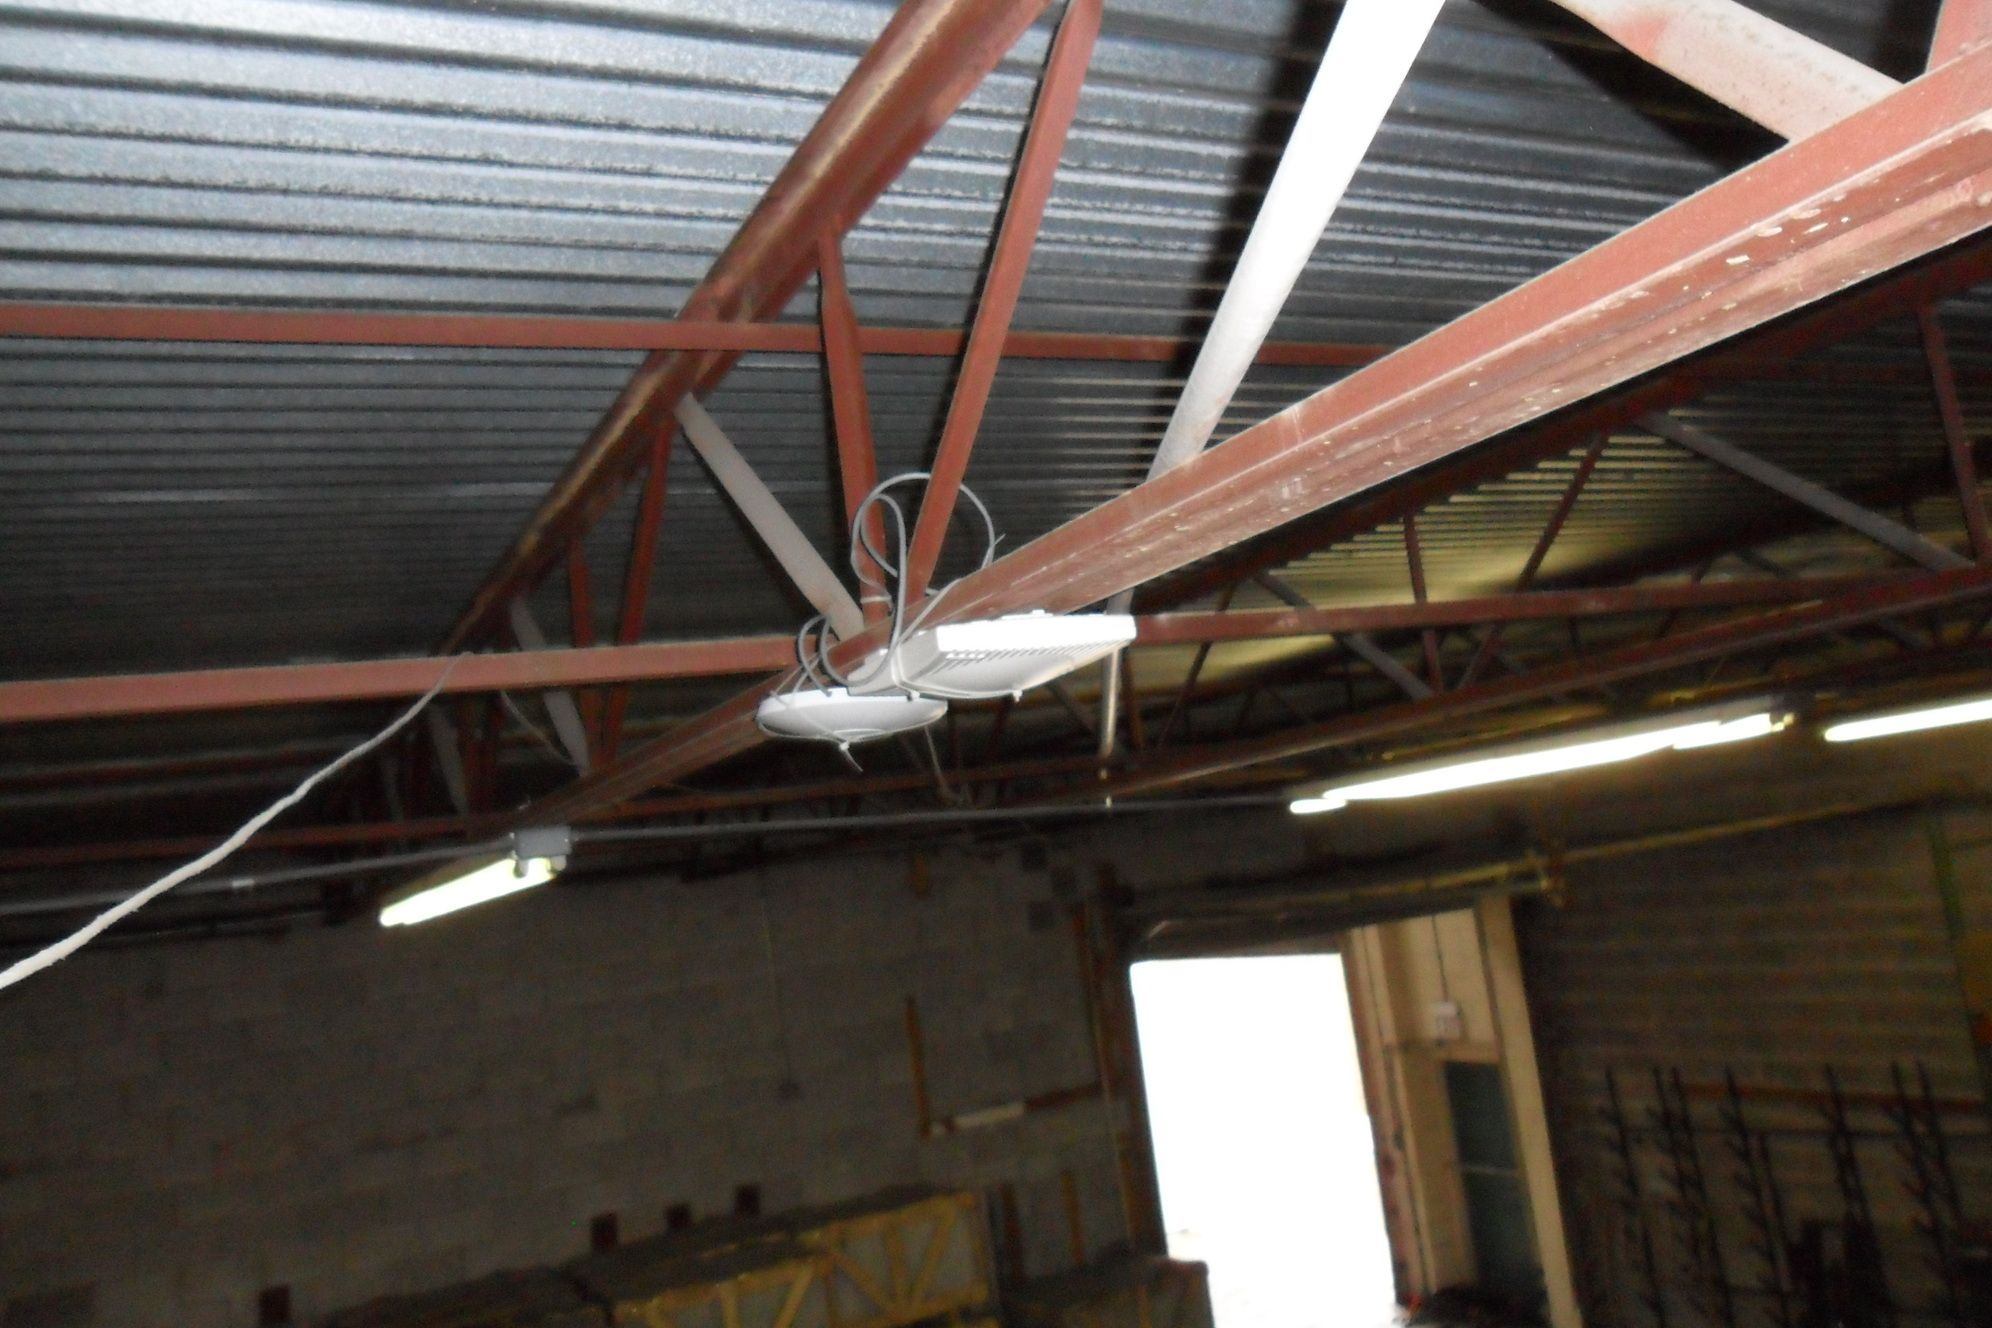 Mounting Unifi Aps To Steel Warehouse Trusses Ubiquiti Community